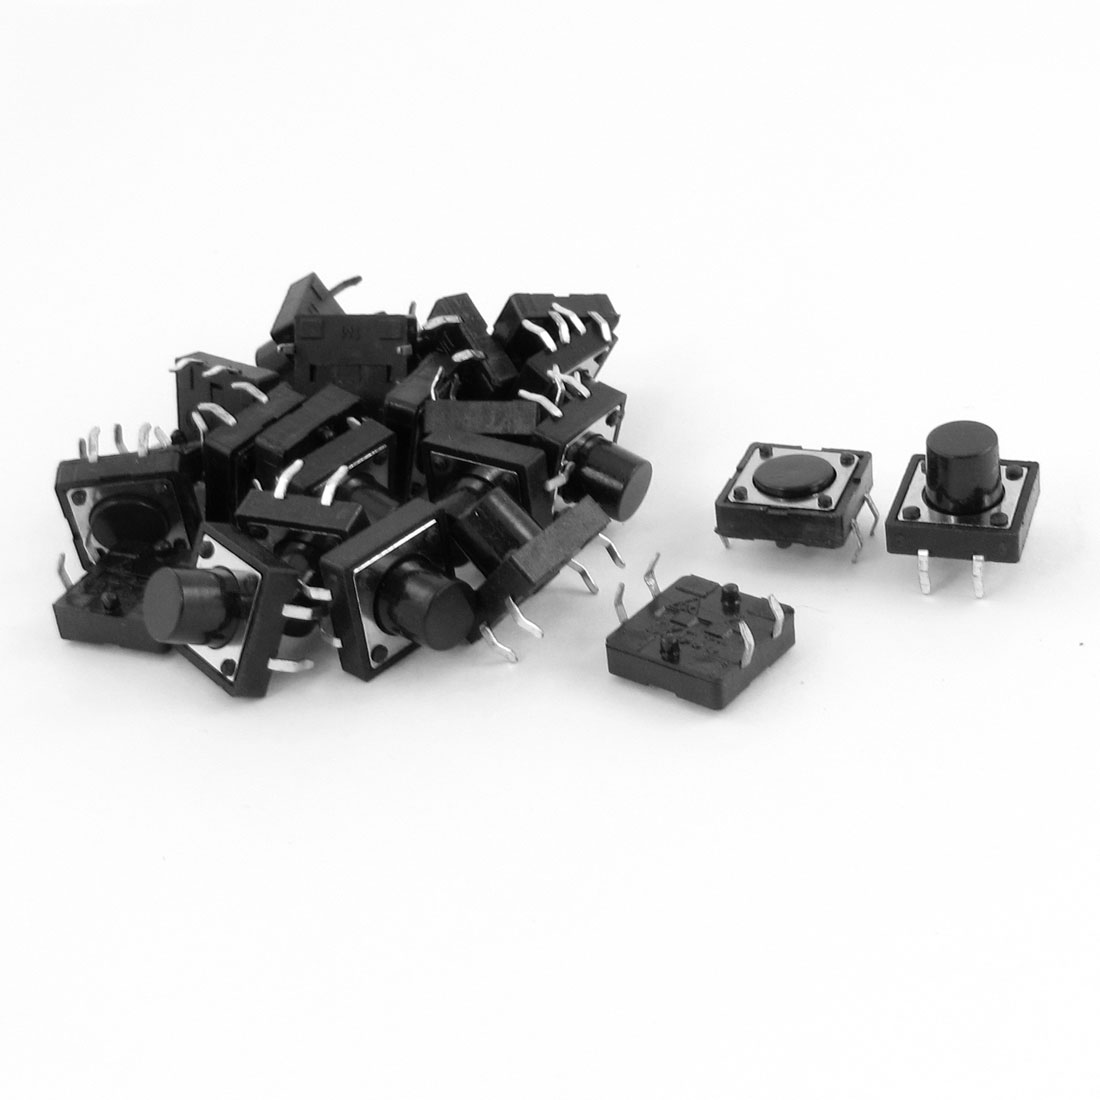 Momentary Contact Tactile Miniature Micro Switches 12mm x 12mm 25pcs